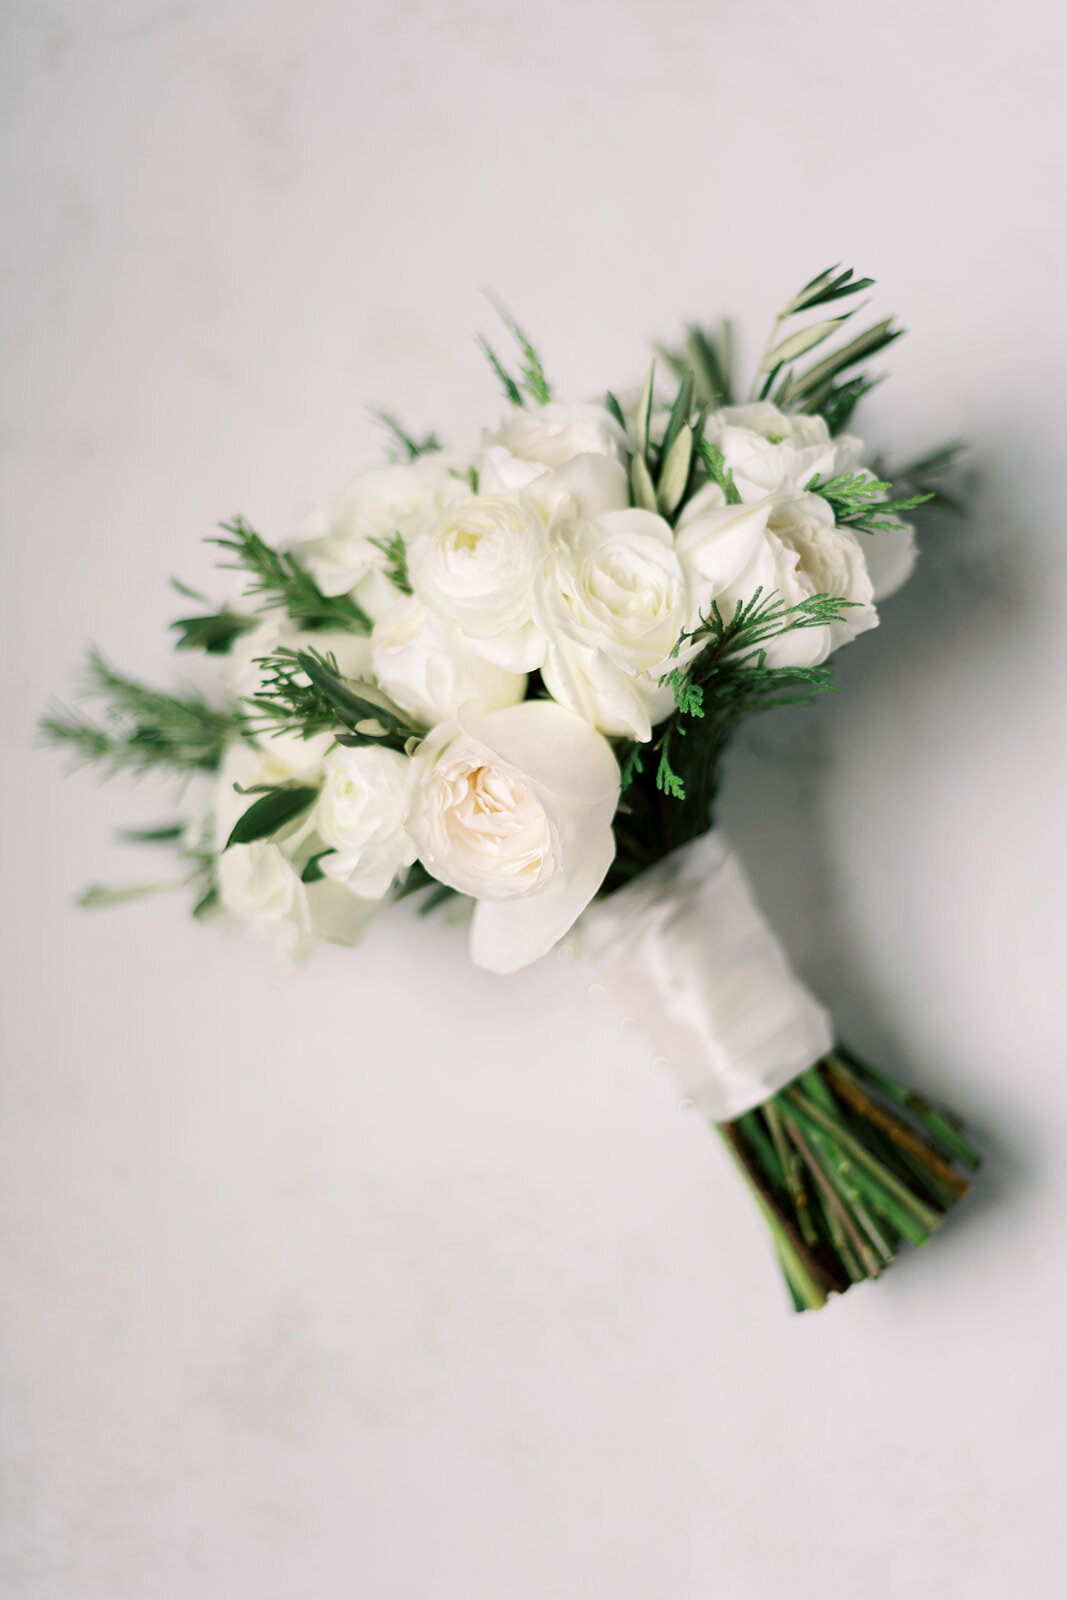 02-Venue-Six10-Wedding-bouquet